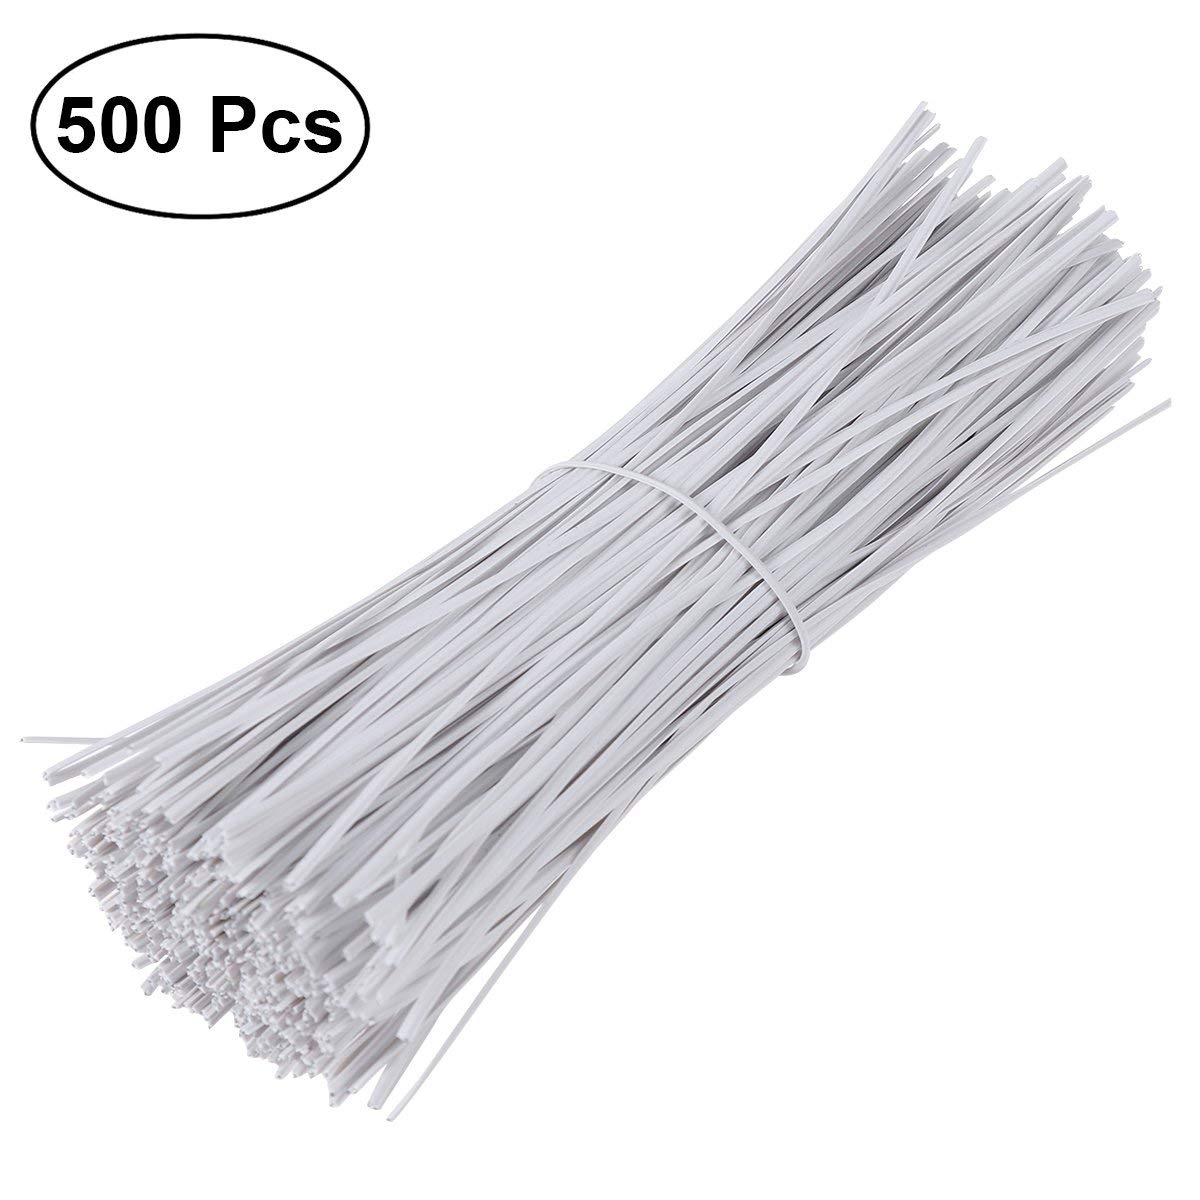 a69c97ea6a03 Get Quotations · OUNONA 500pcs Cable Wrap Ties Plastic Coated Iron Wire  Twist Ties,15cm (White)